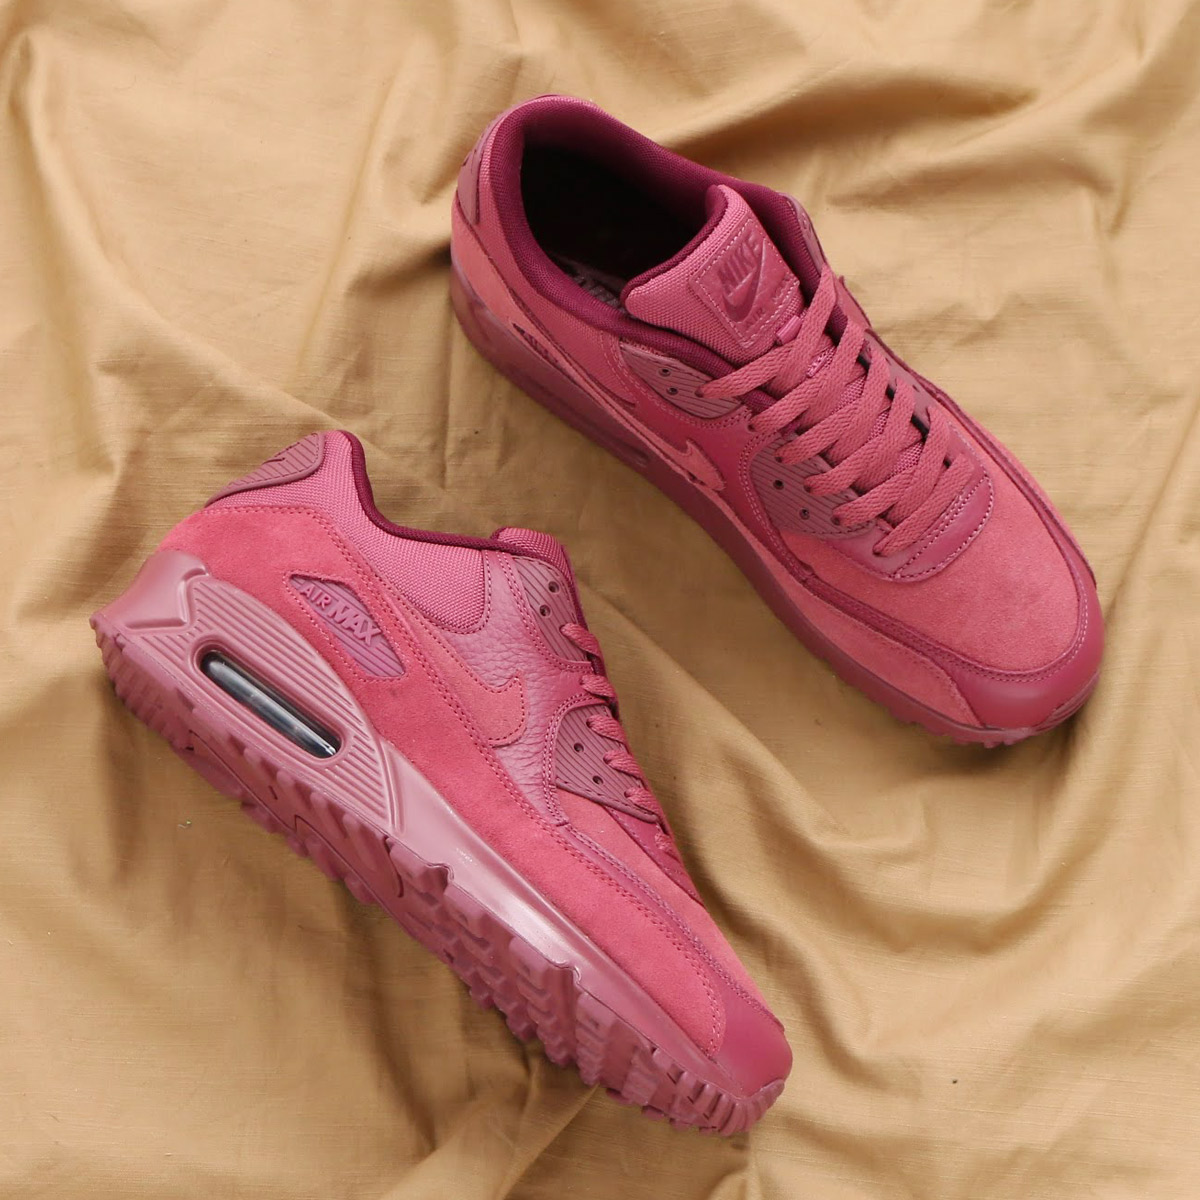 313684772f28 ... ☆ maximum point 10 times that is targeted for all articles! NIKE AIR  MAX 90 PREMIUM (Kie Ney AMAX 90 premium) (VINTAGE WINE VINTAGE  WINE-BORDEAUX) ...